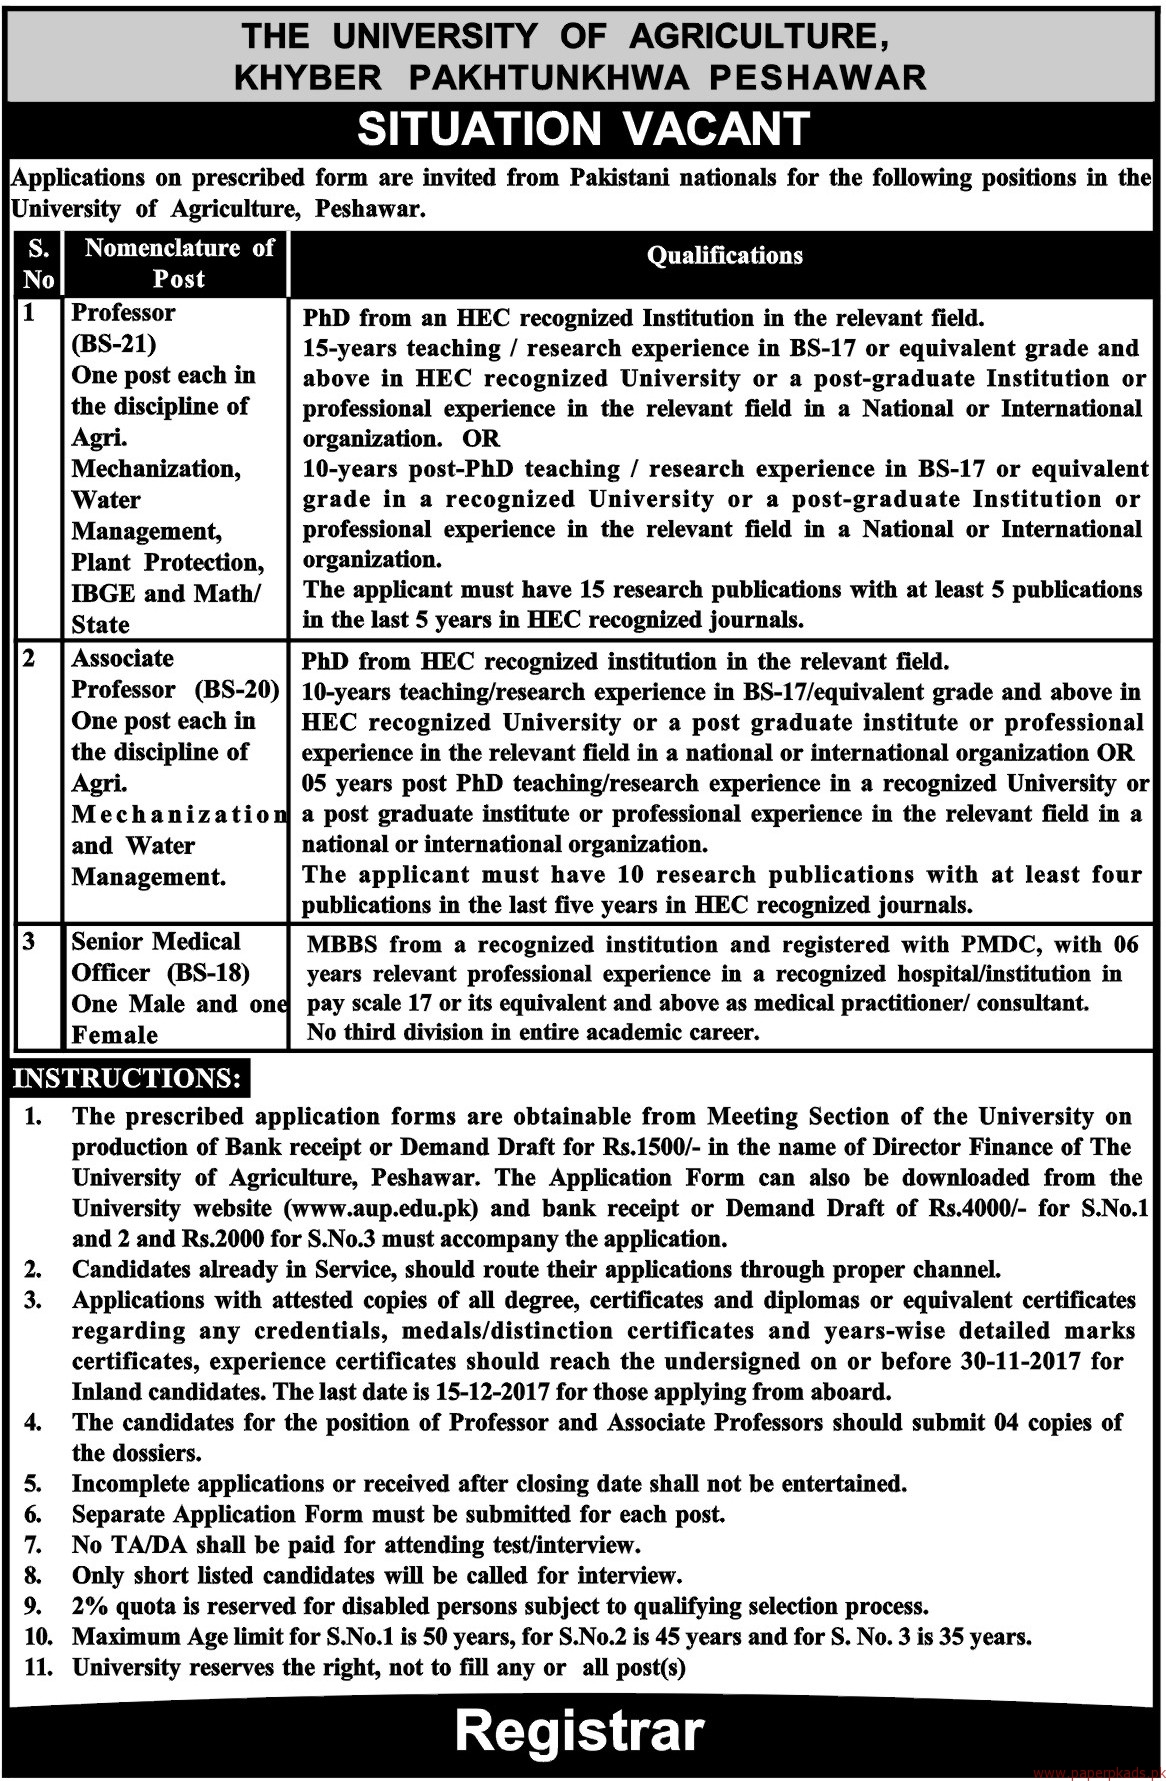 The University of Agriculture Khyber Pakhtunkhwa Peshawar Jobs 2017